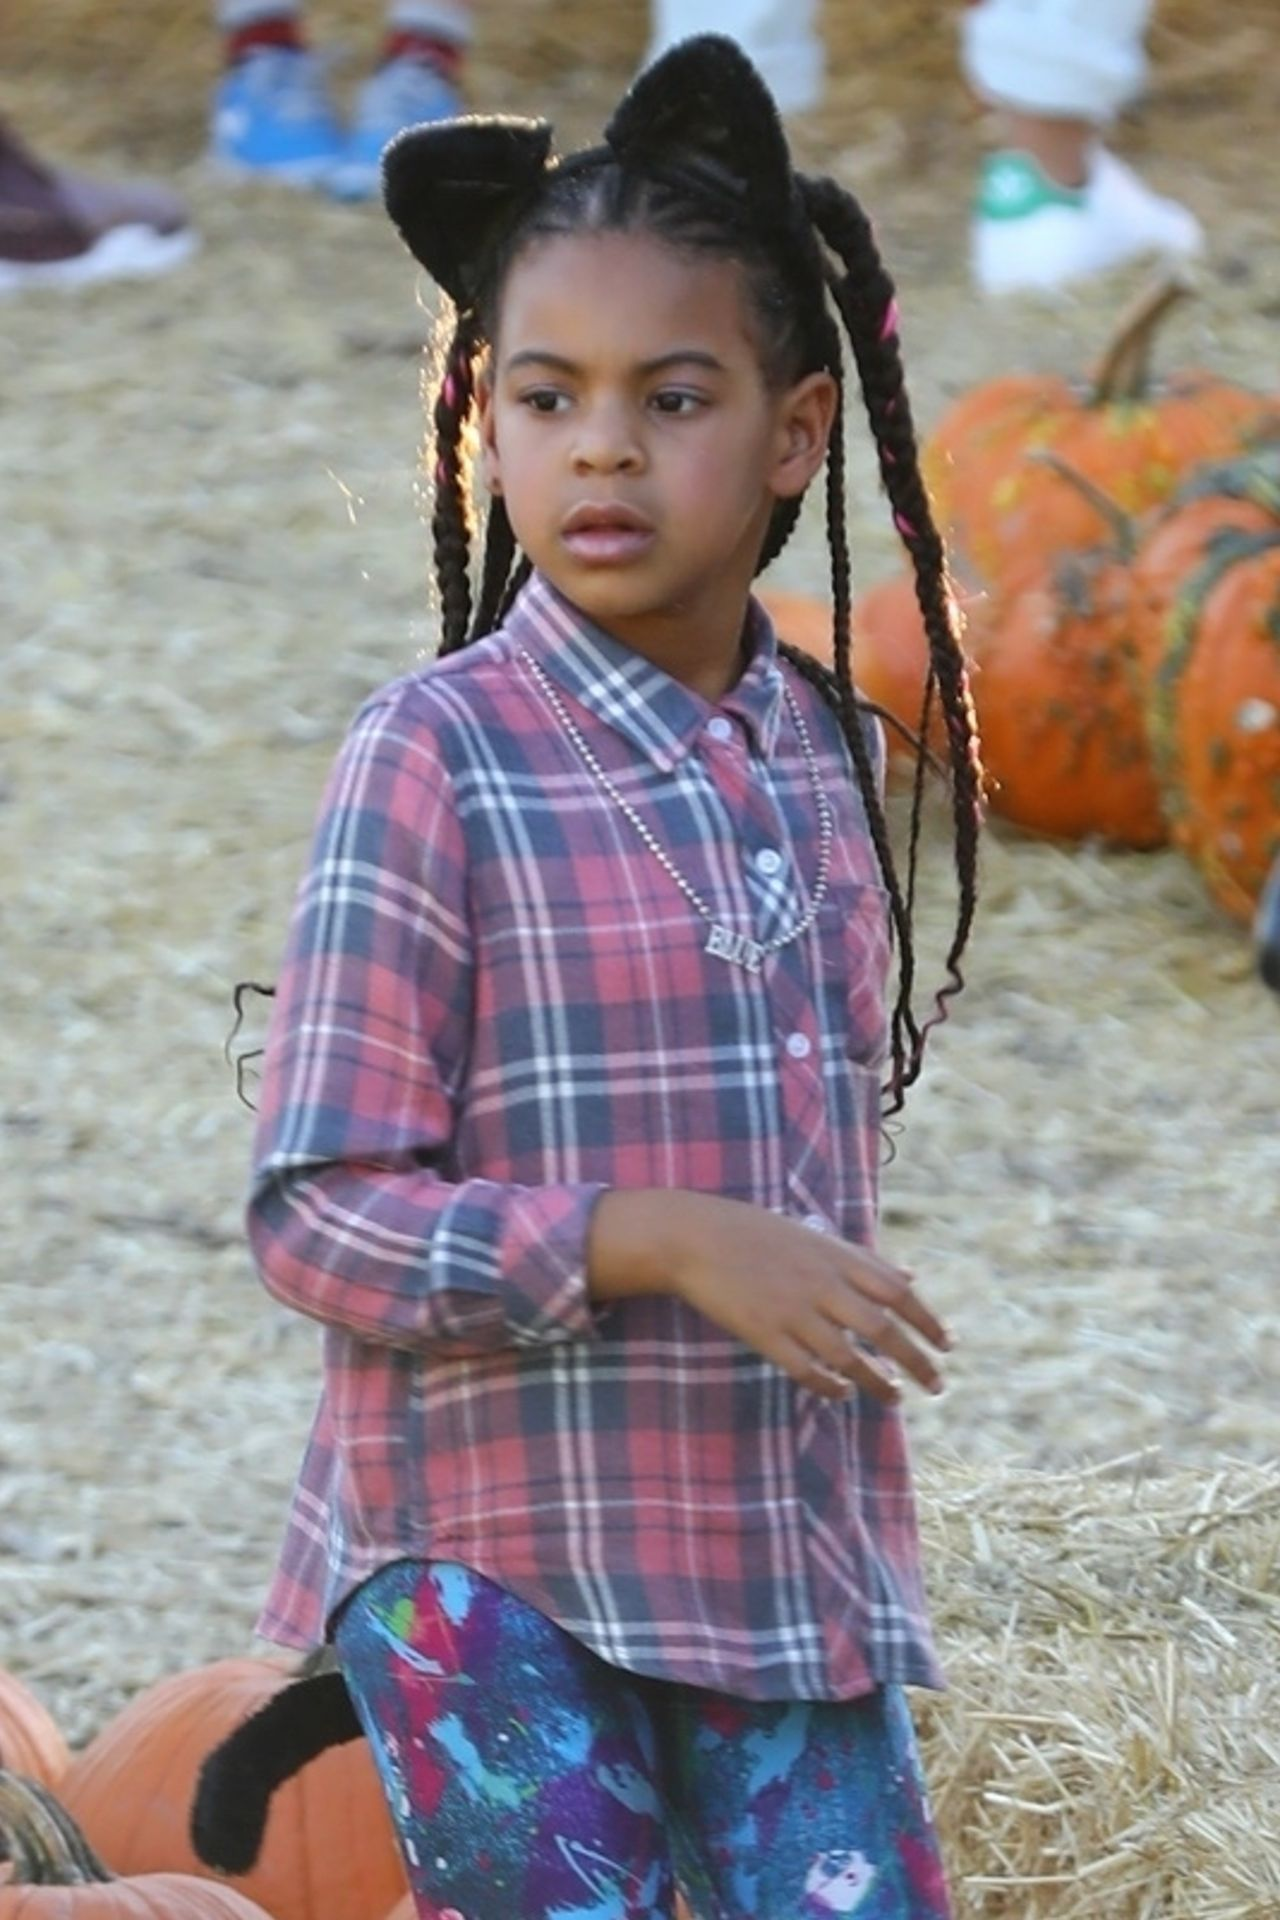 *EXCLUSIVE* Blue Ivy Carter enjoys a pony ride at the pumpkin patch with friends